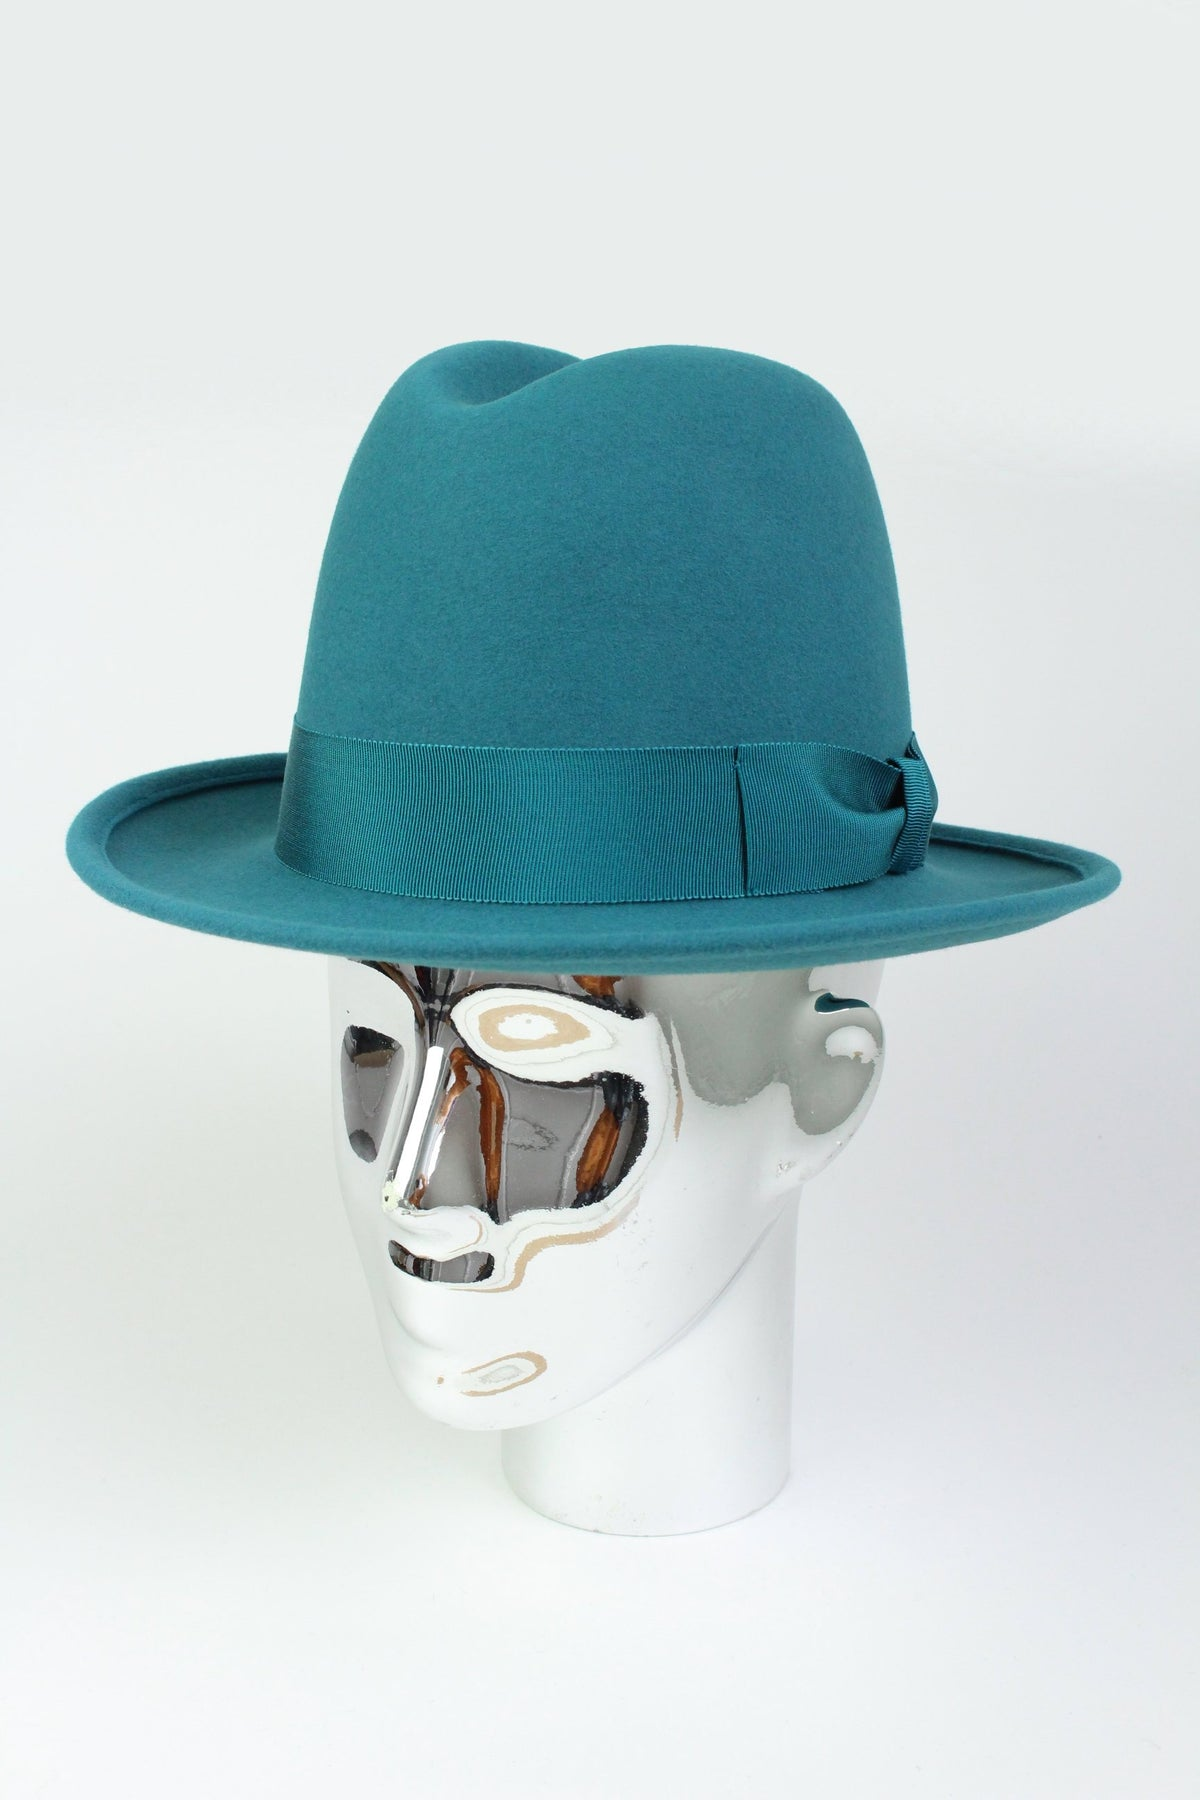 HOMBURG - THAMES-hats-A Child Of The Jago